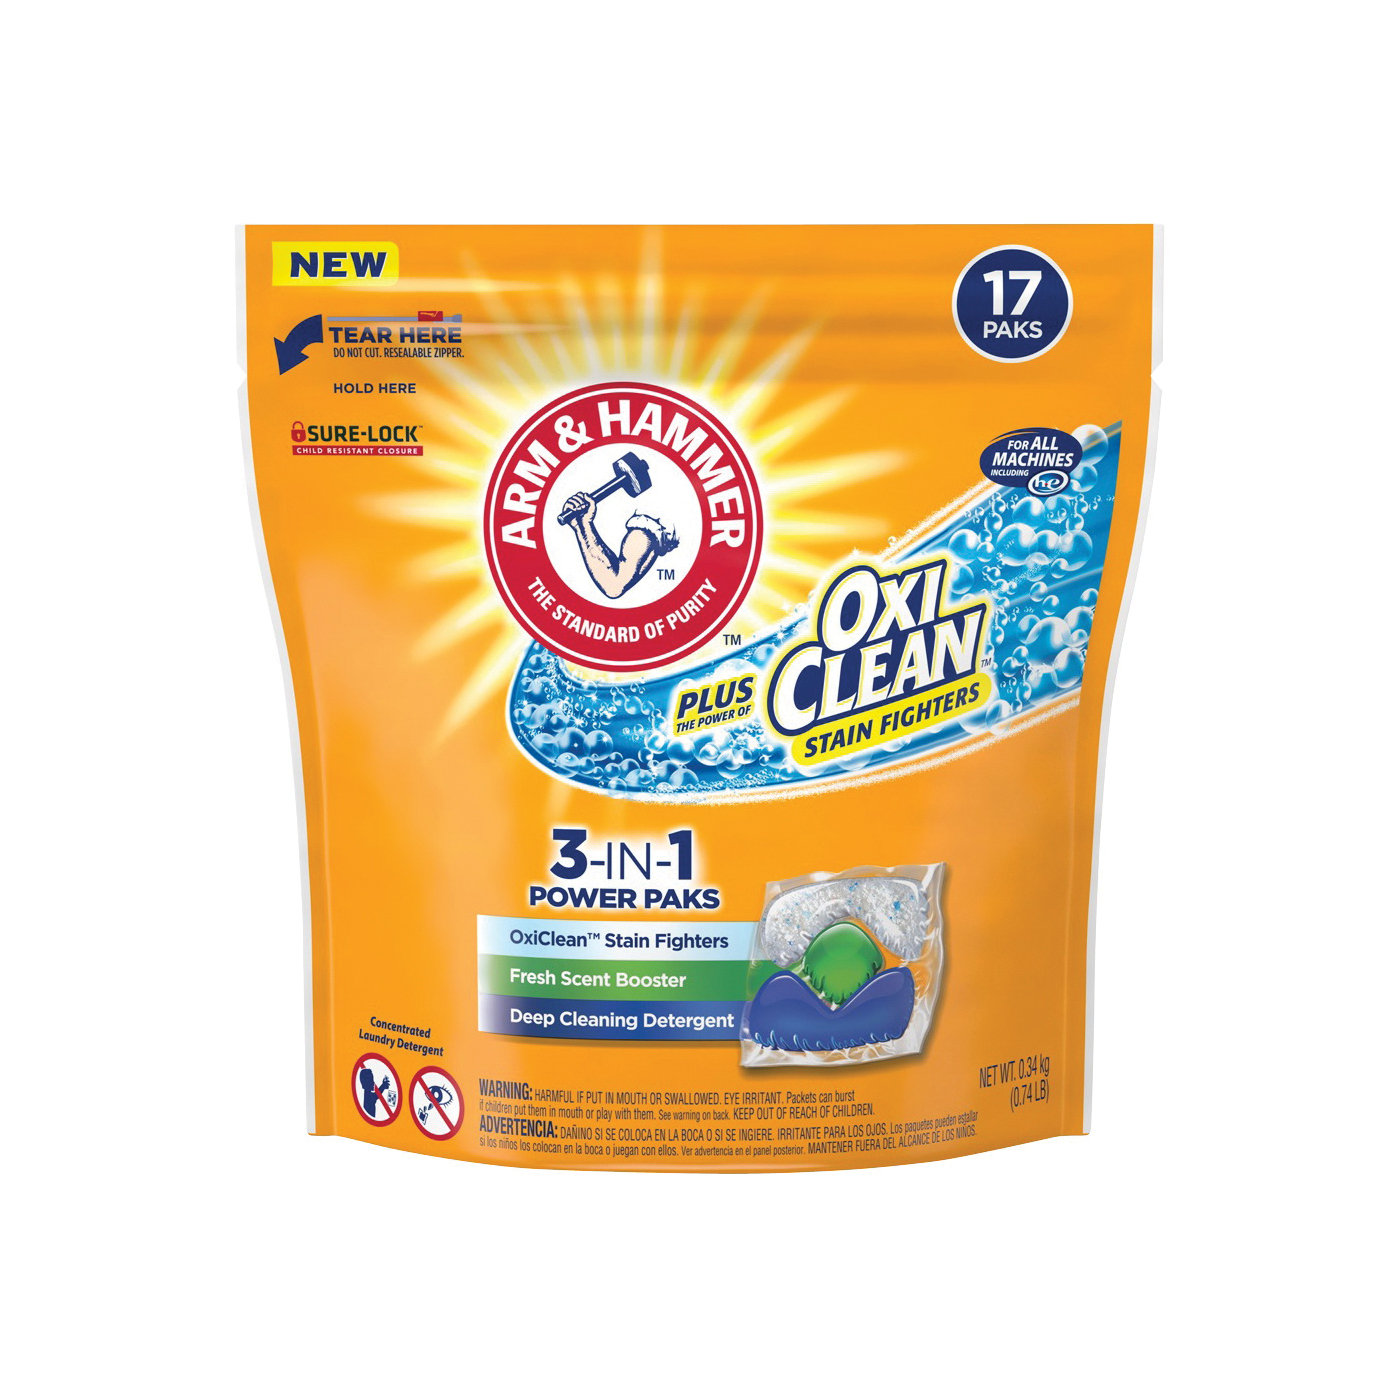 Picture of ARM & HAMMER 94206 Laundry Detergent, 17 CT, Pack, Fresh